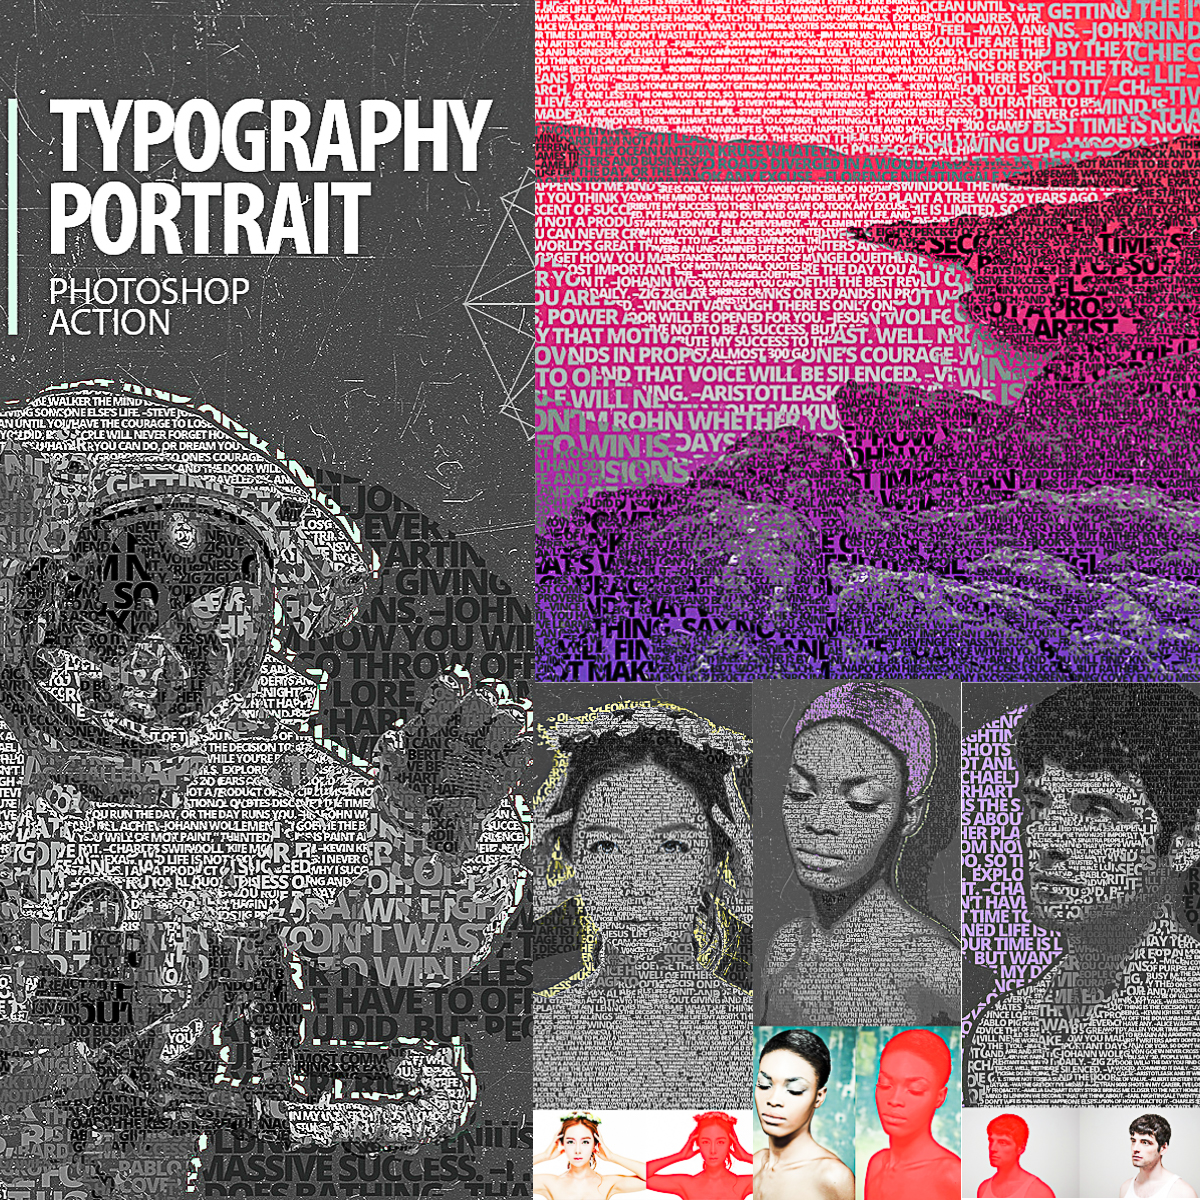 Typography Portrait Photoshop Action | Free download